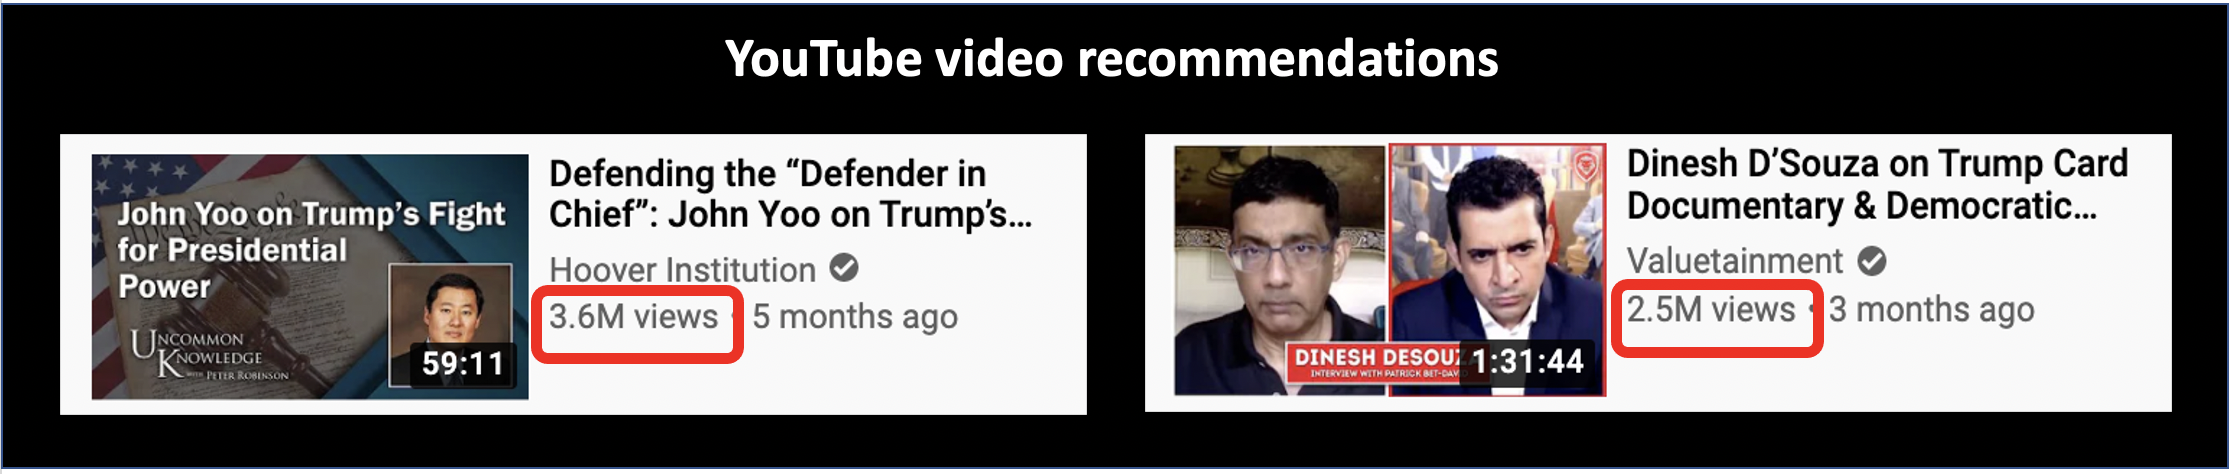 YouTube recommends videos for viewers to match in order to show more ads.